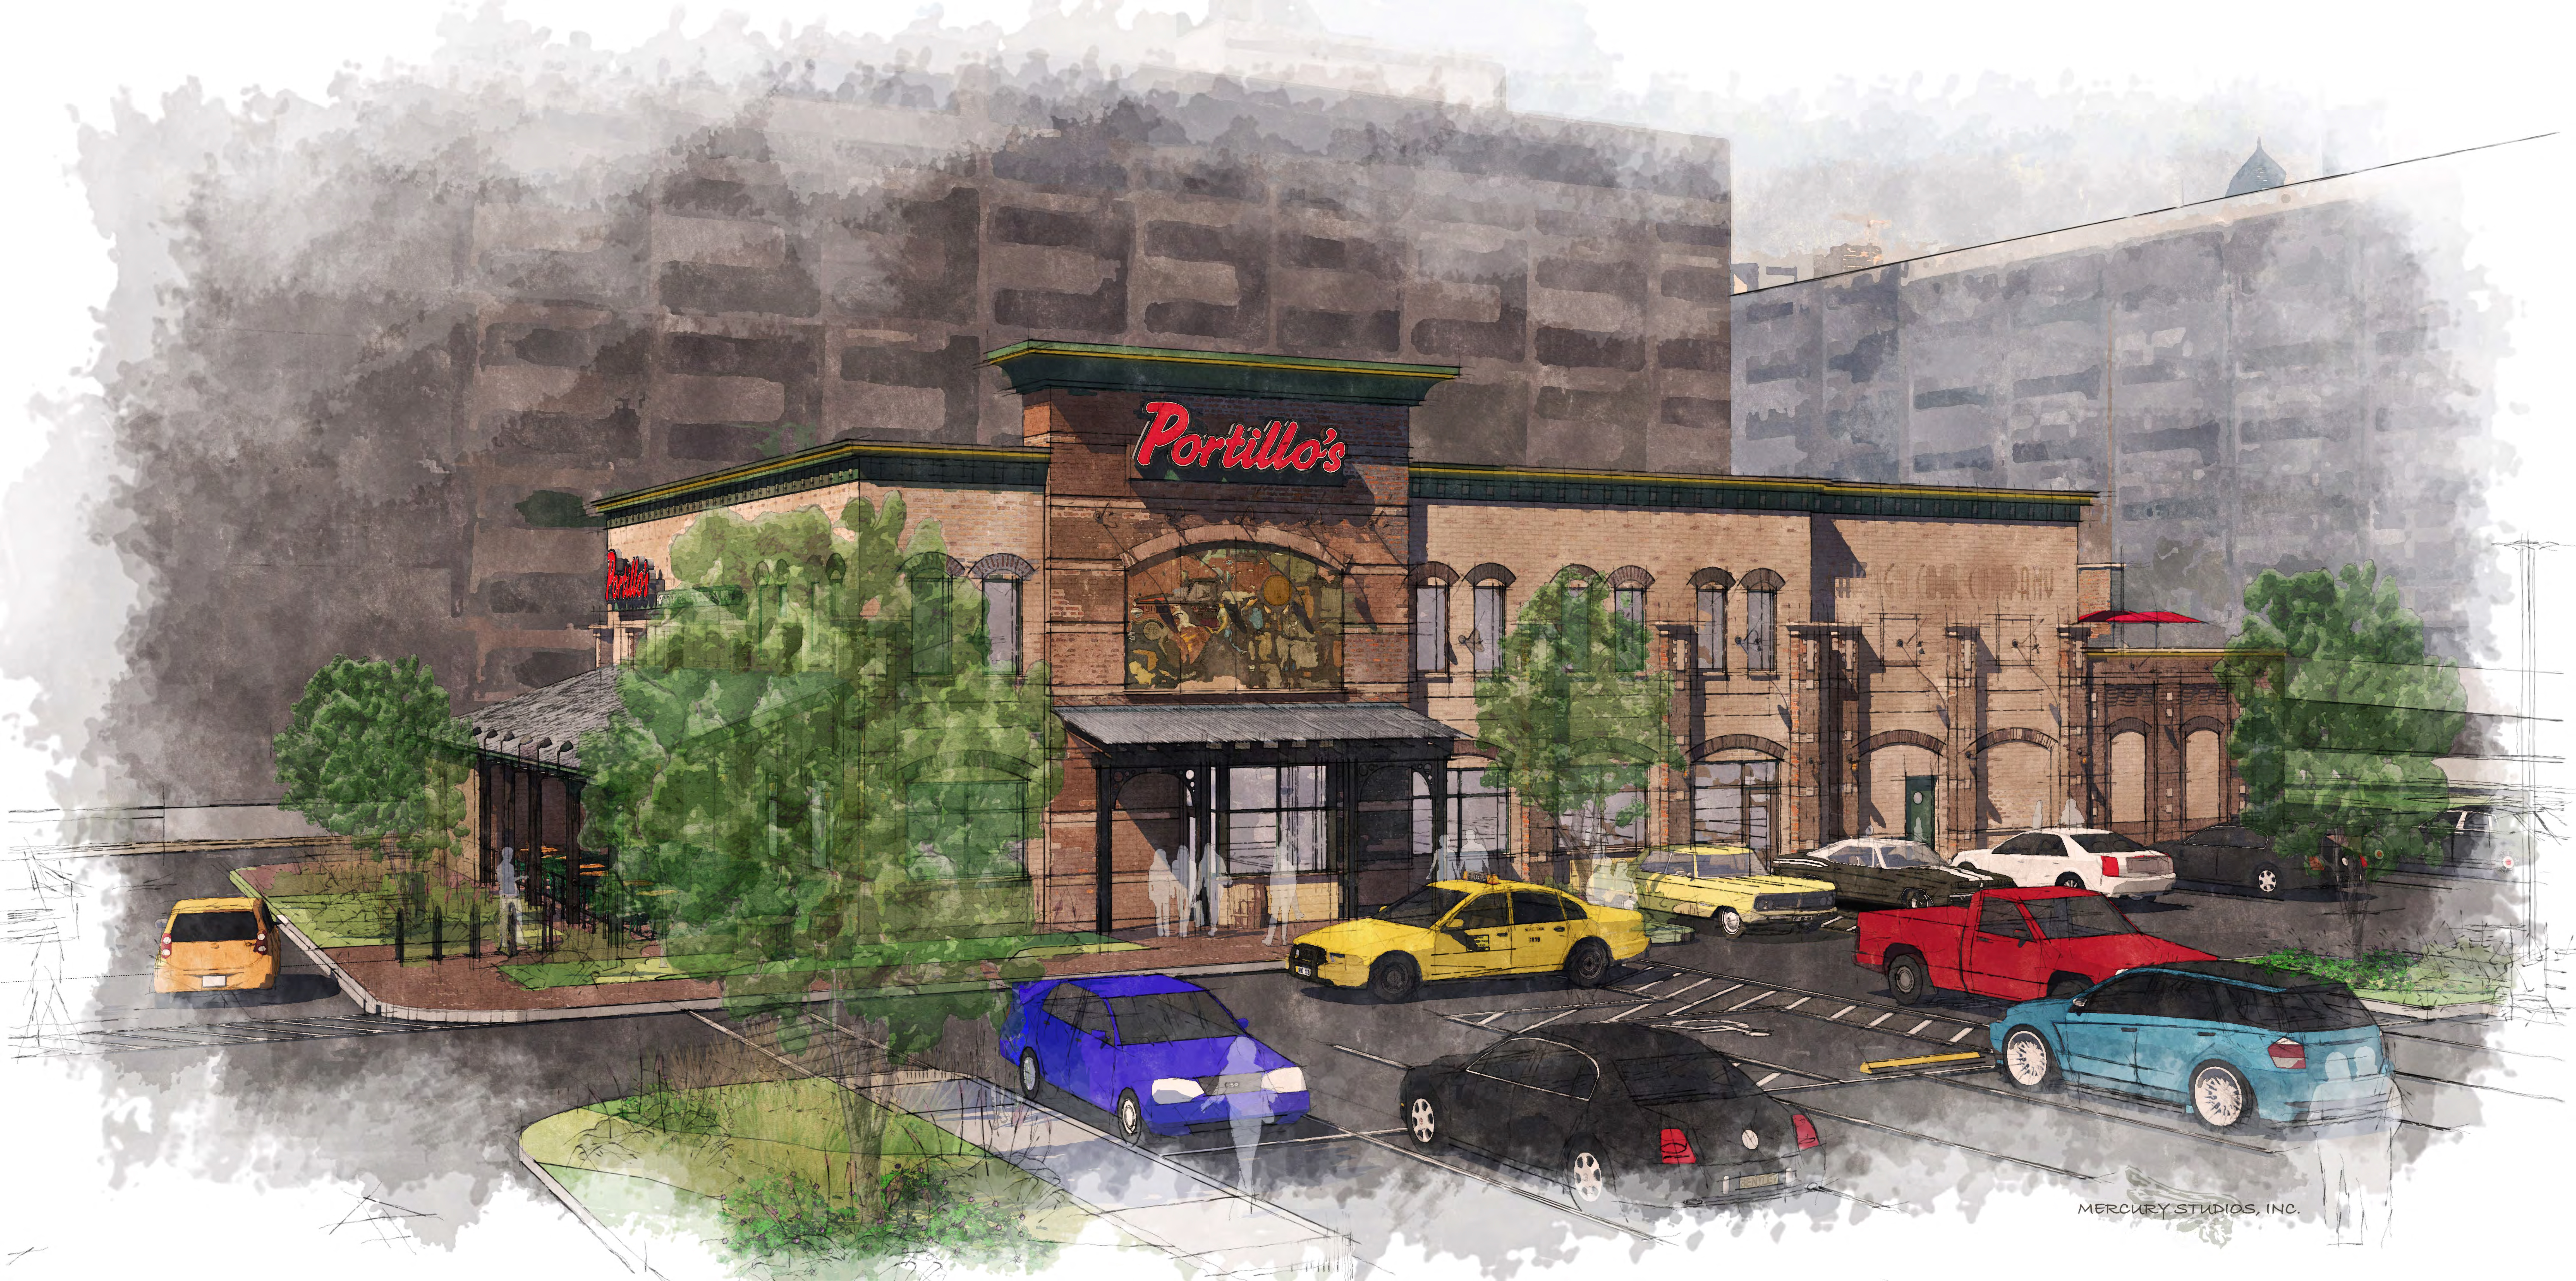 A rendering of the planned Portillo's